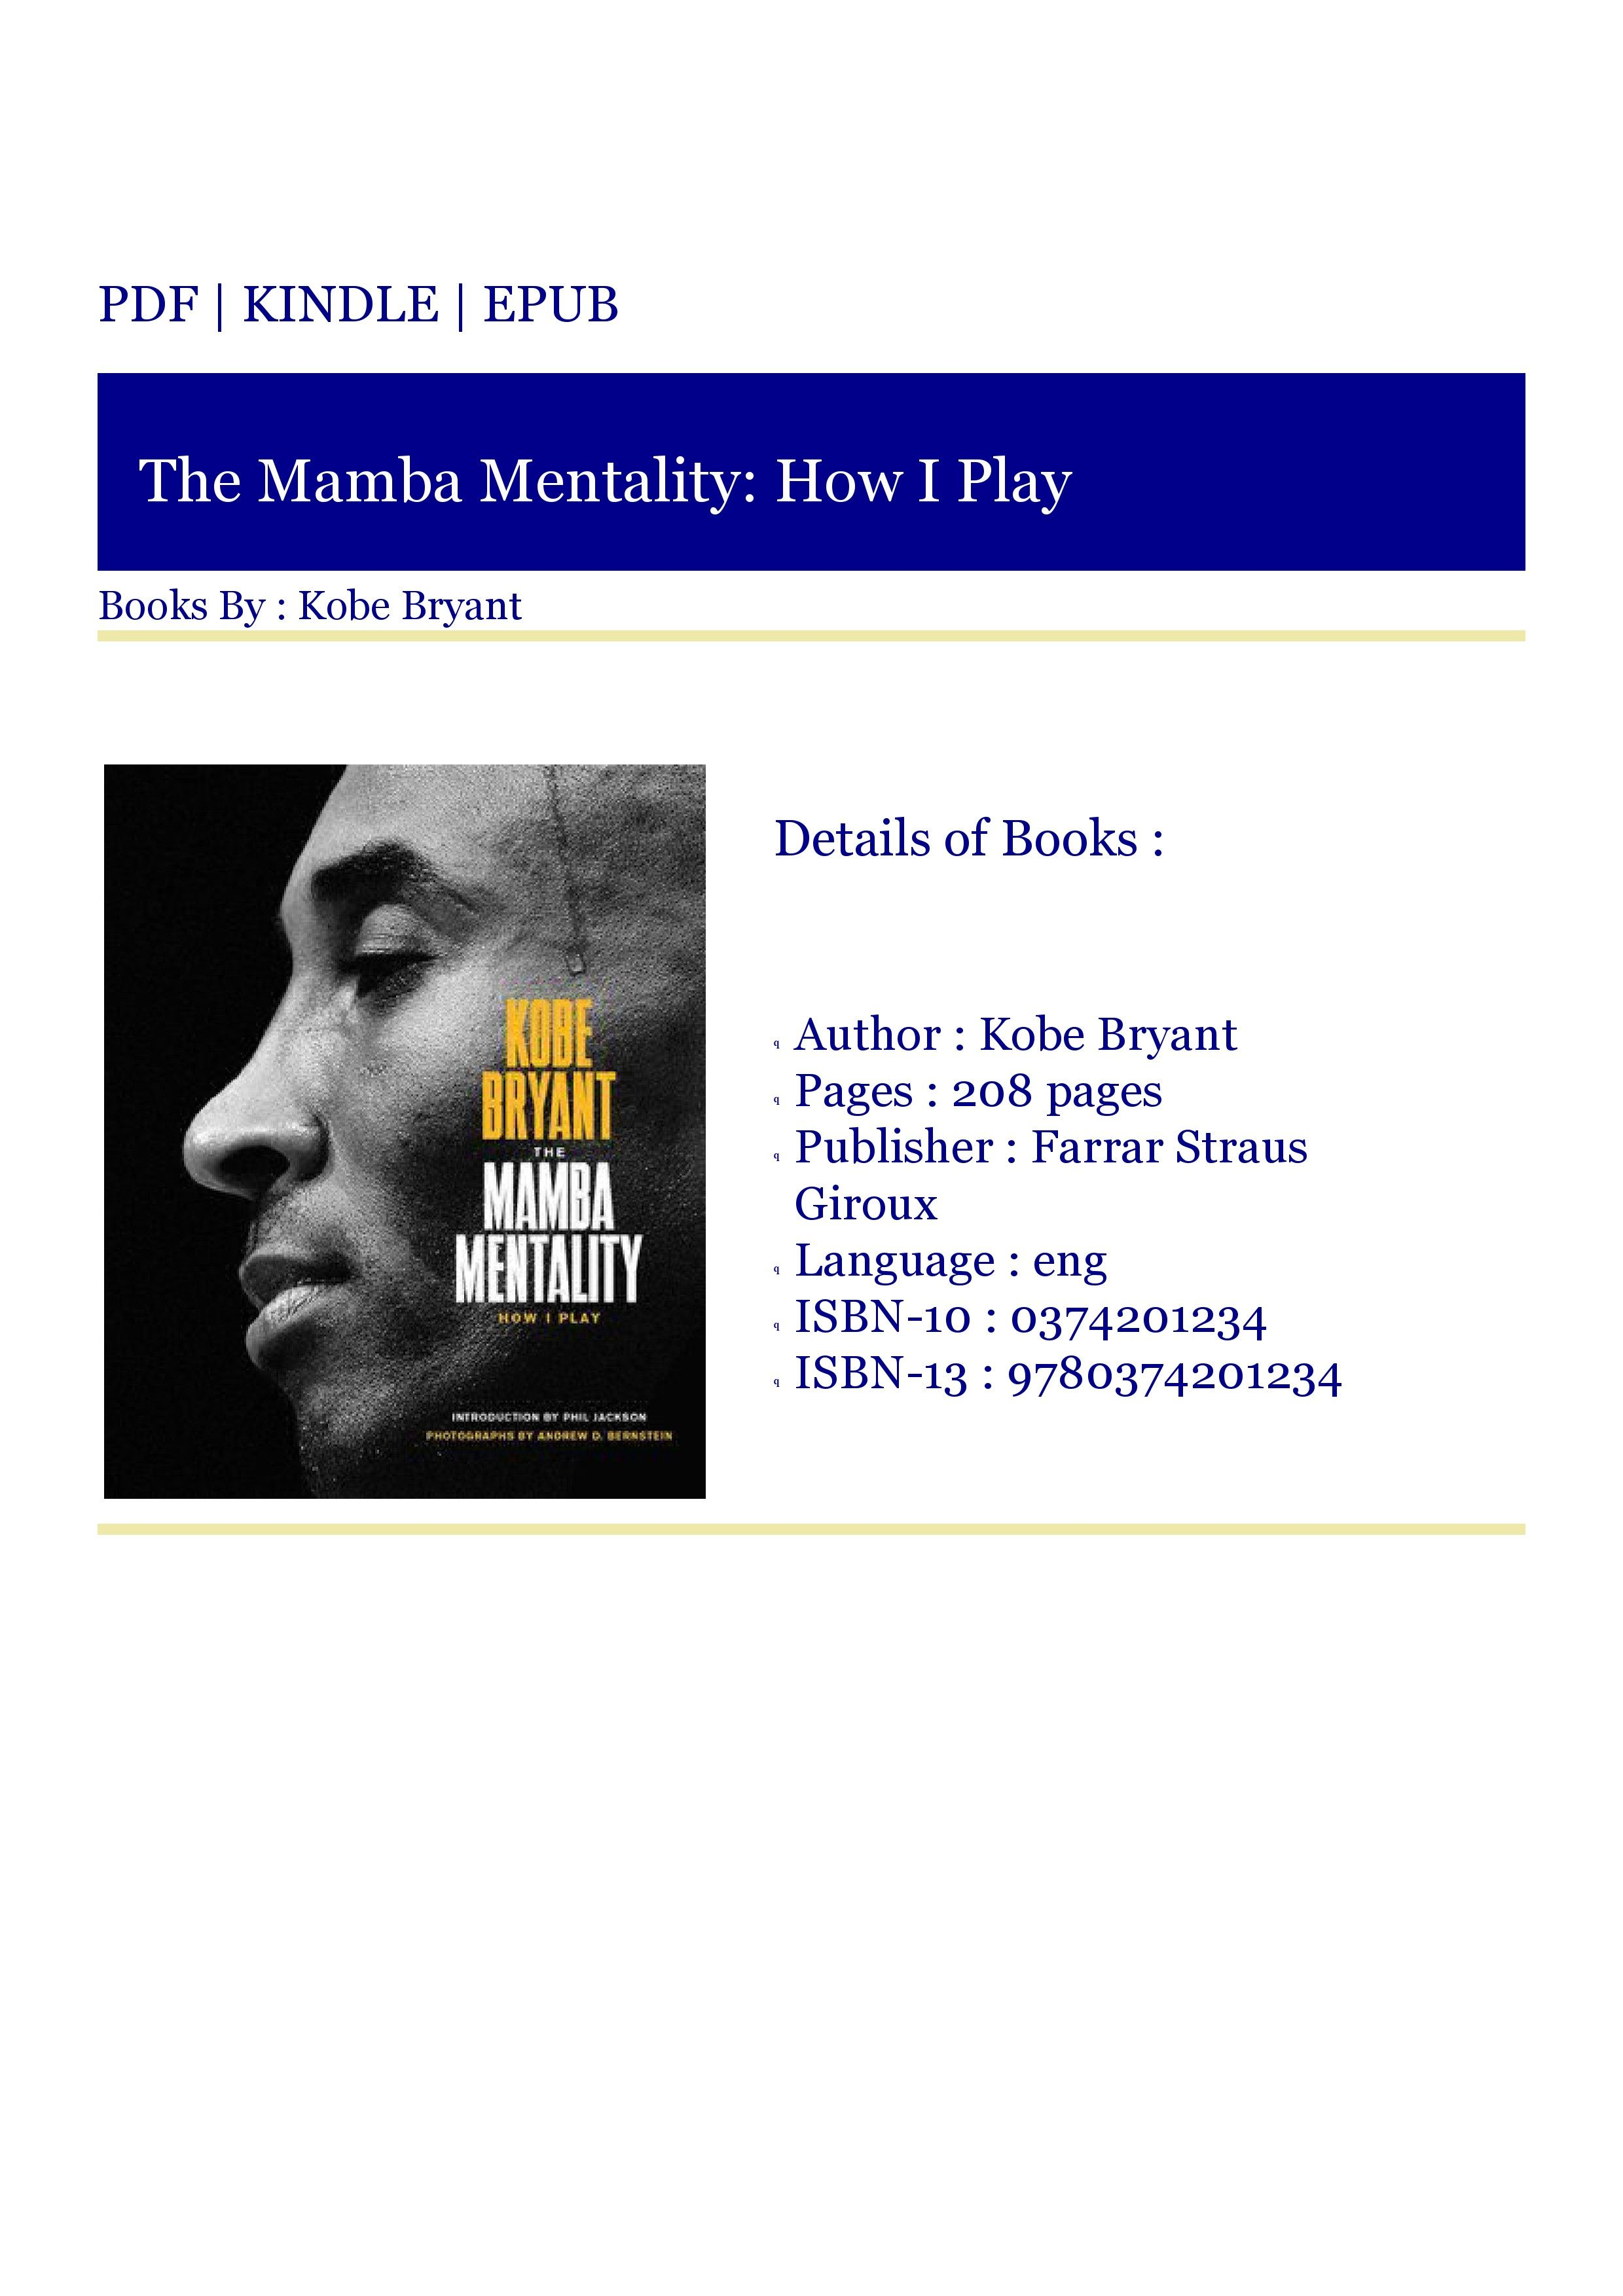 ***Download [PDF] The Mamba Mentality How I Play in 2020